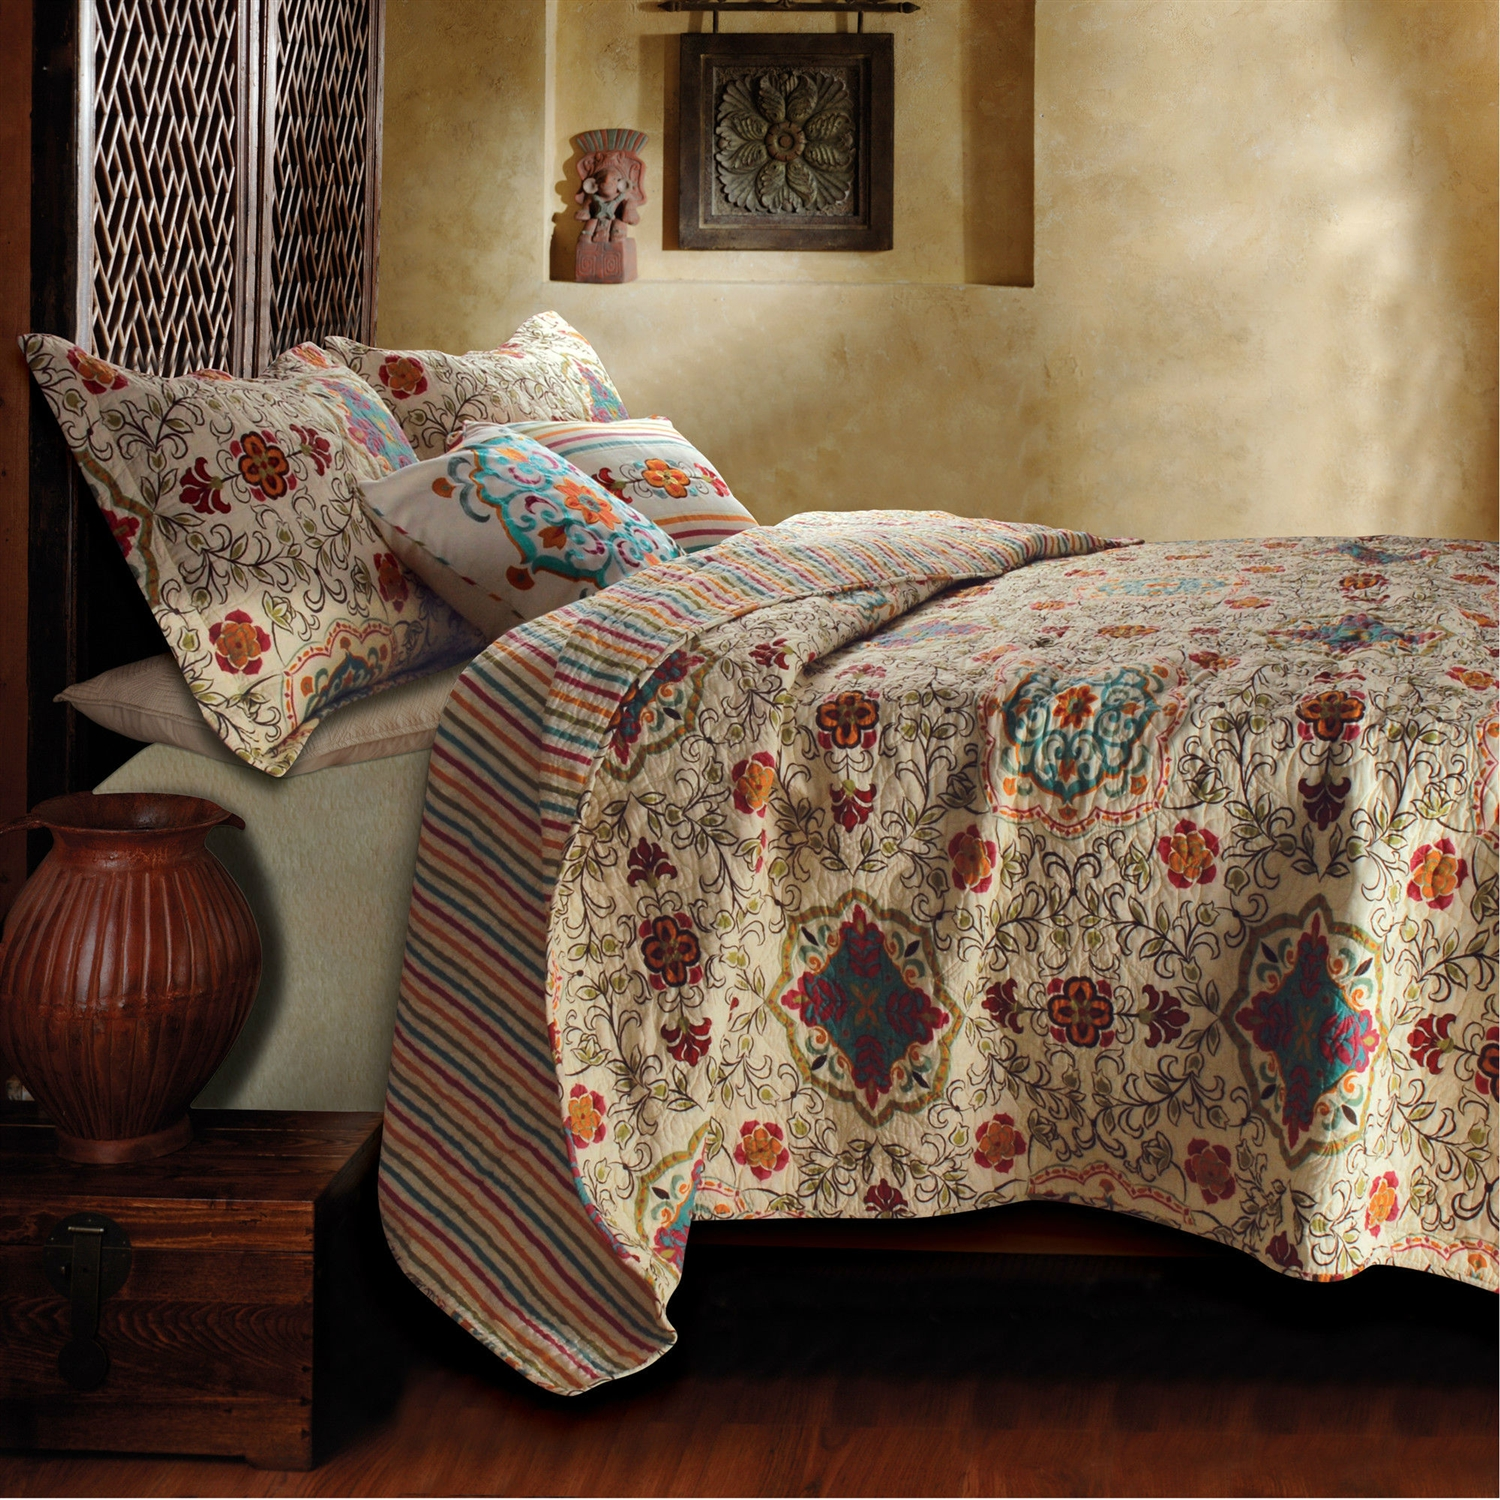 Excellent king size quilts for modern bedroom design with king size quilt dimensions